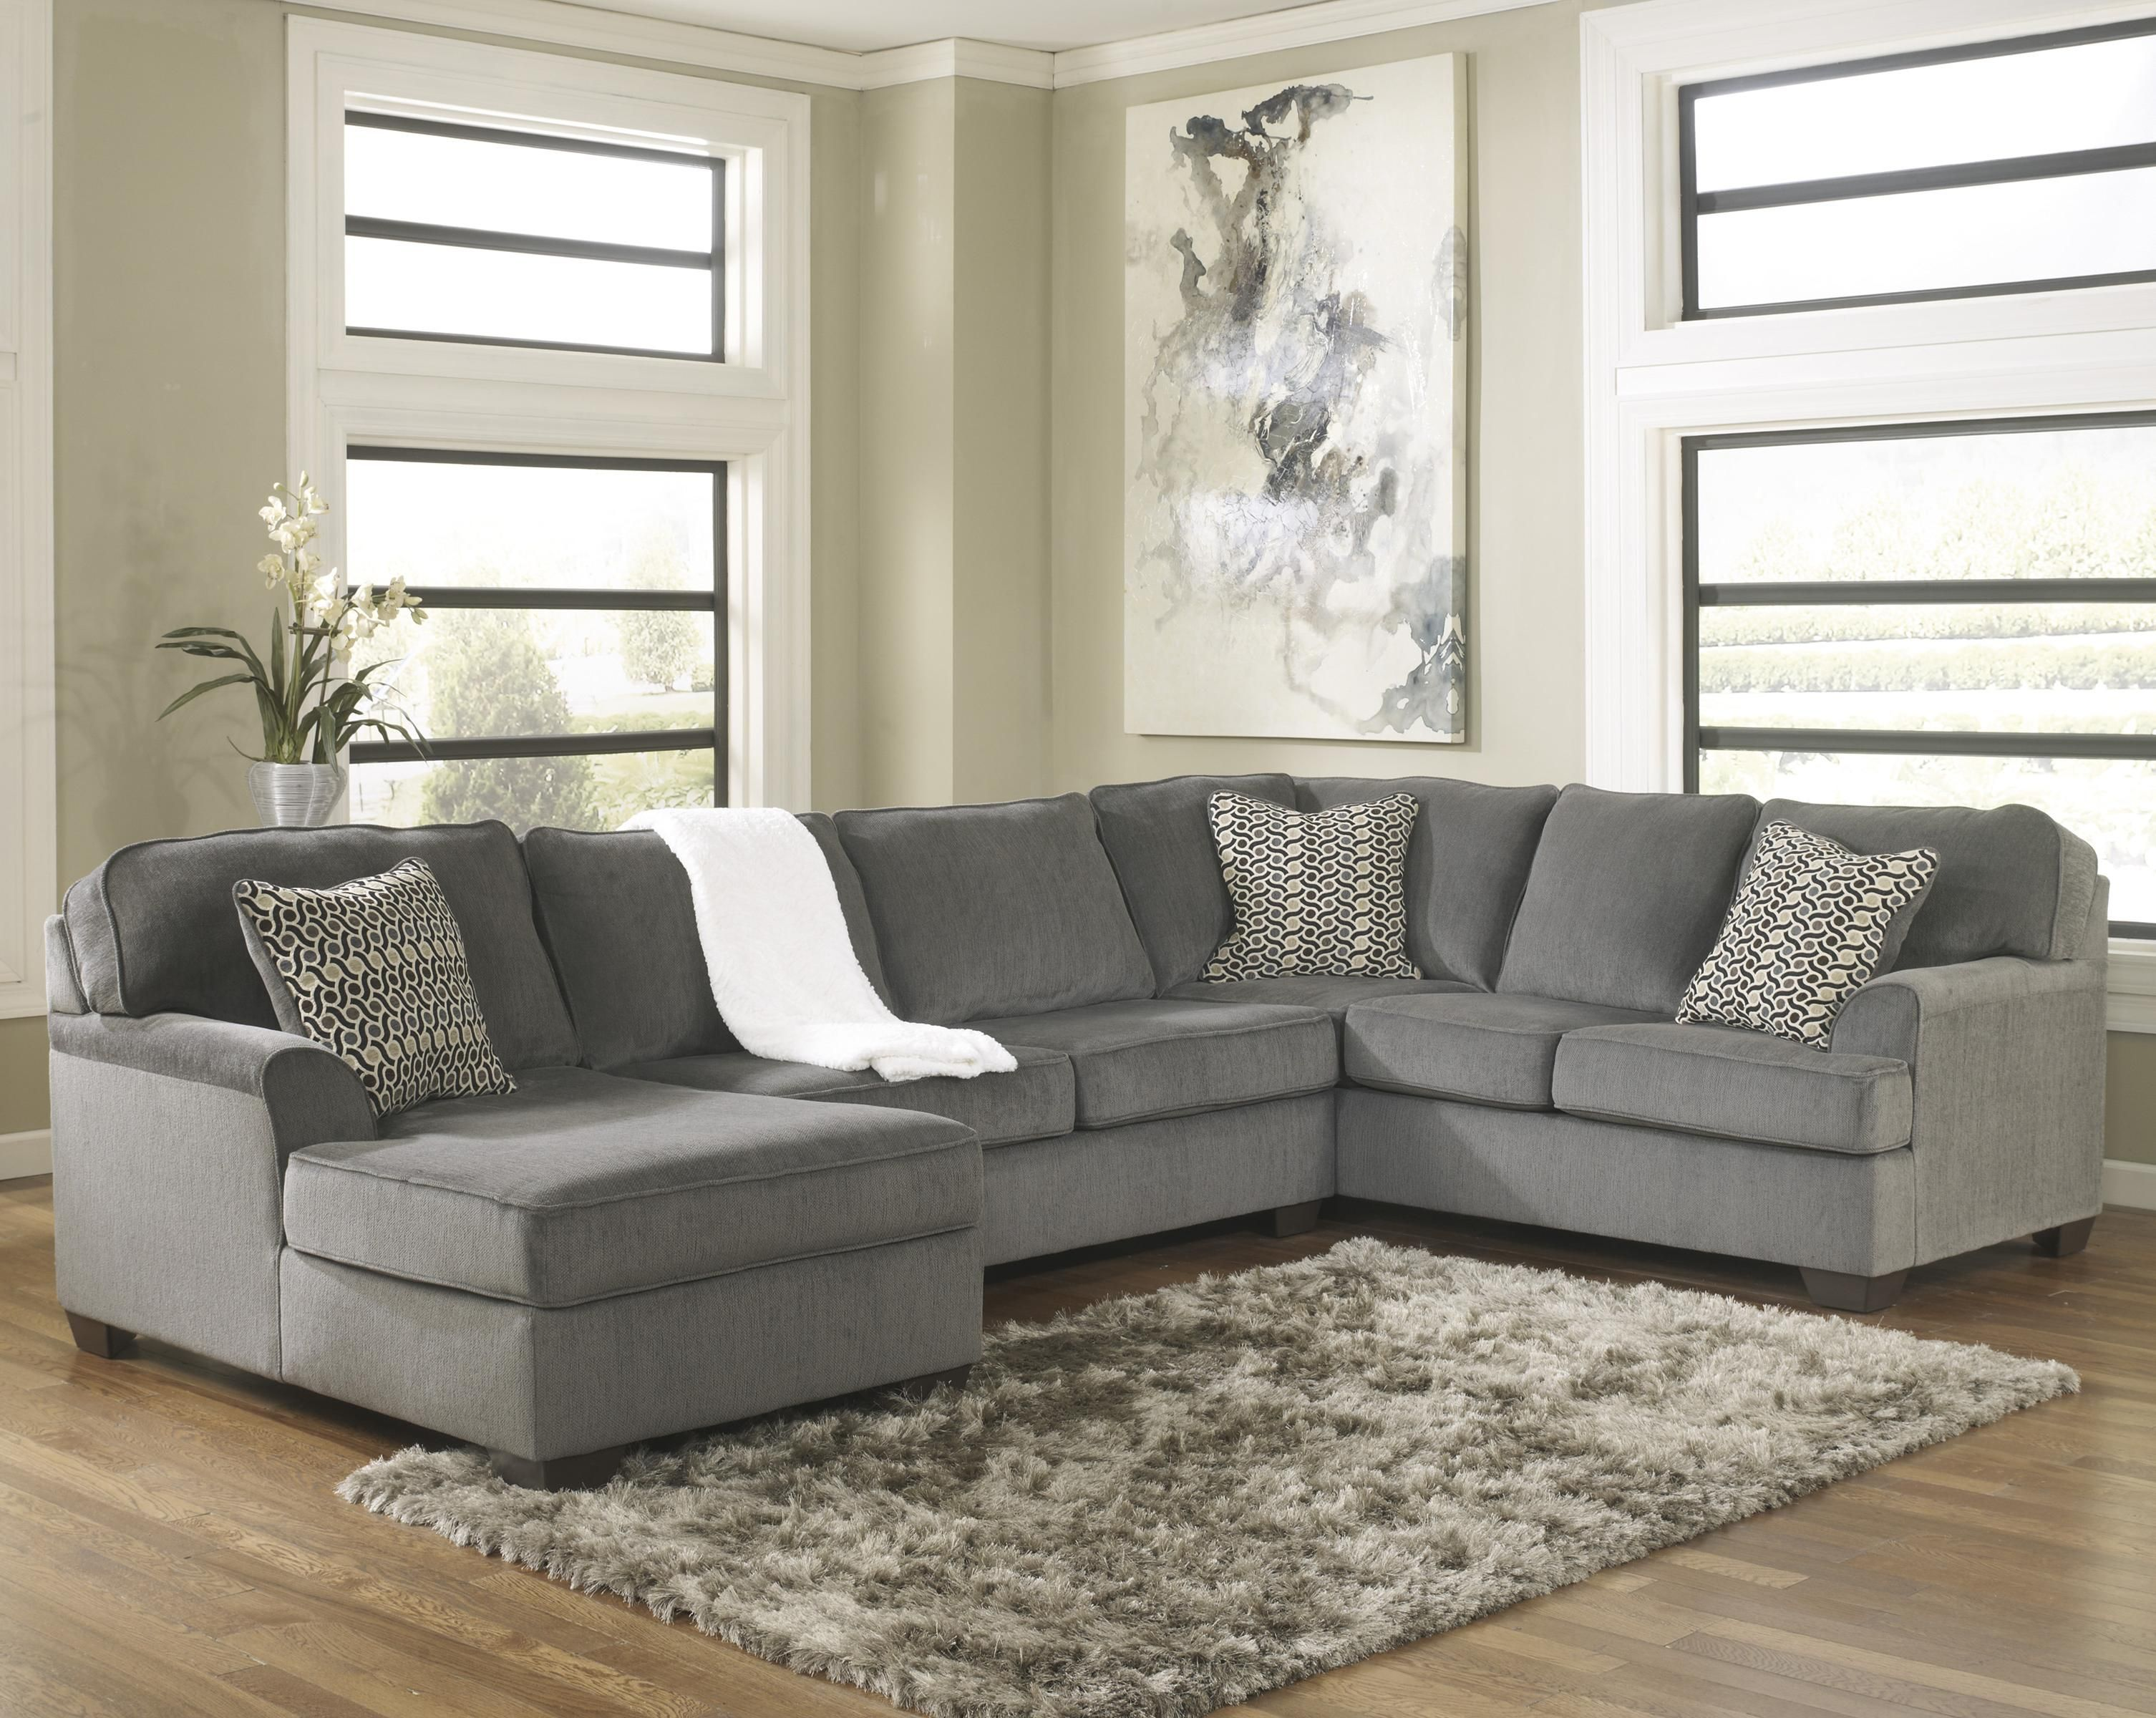 Sofa Mart Idaho Falls Loric Smoke Contemporary 3 Piece Sectional With Left Chaise By